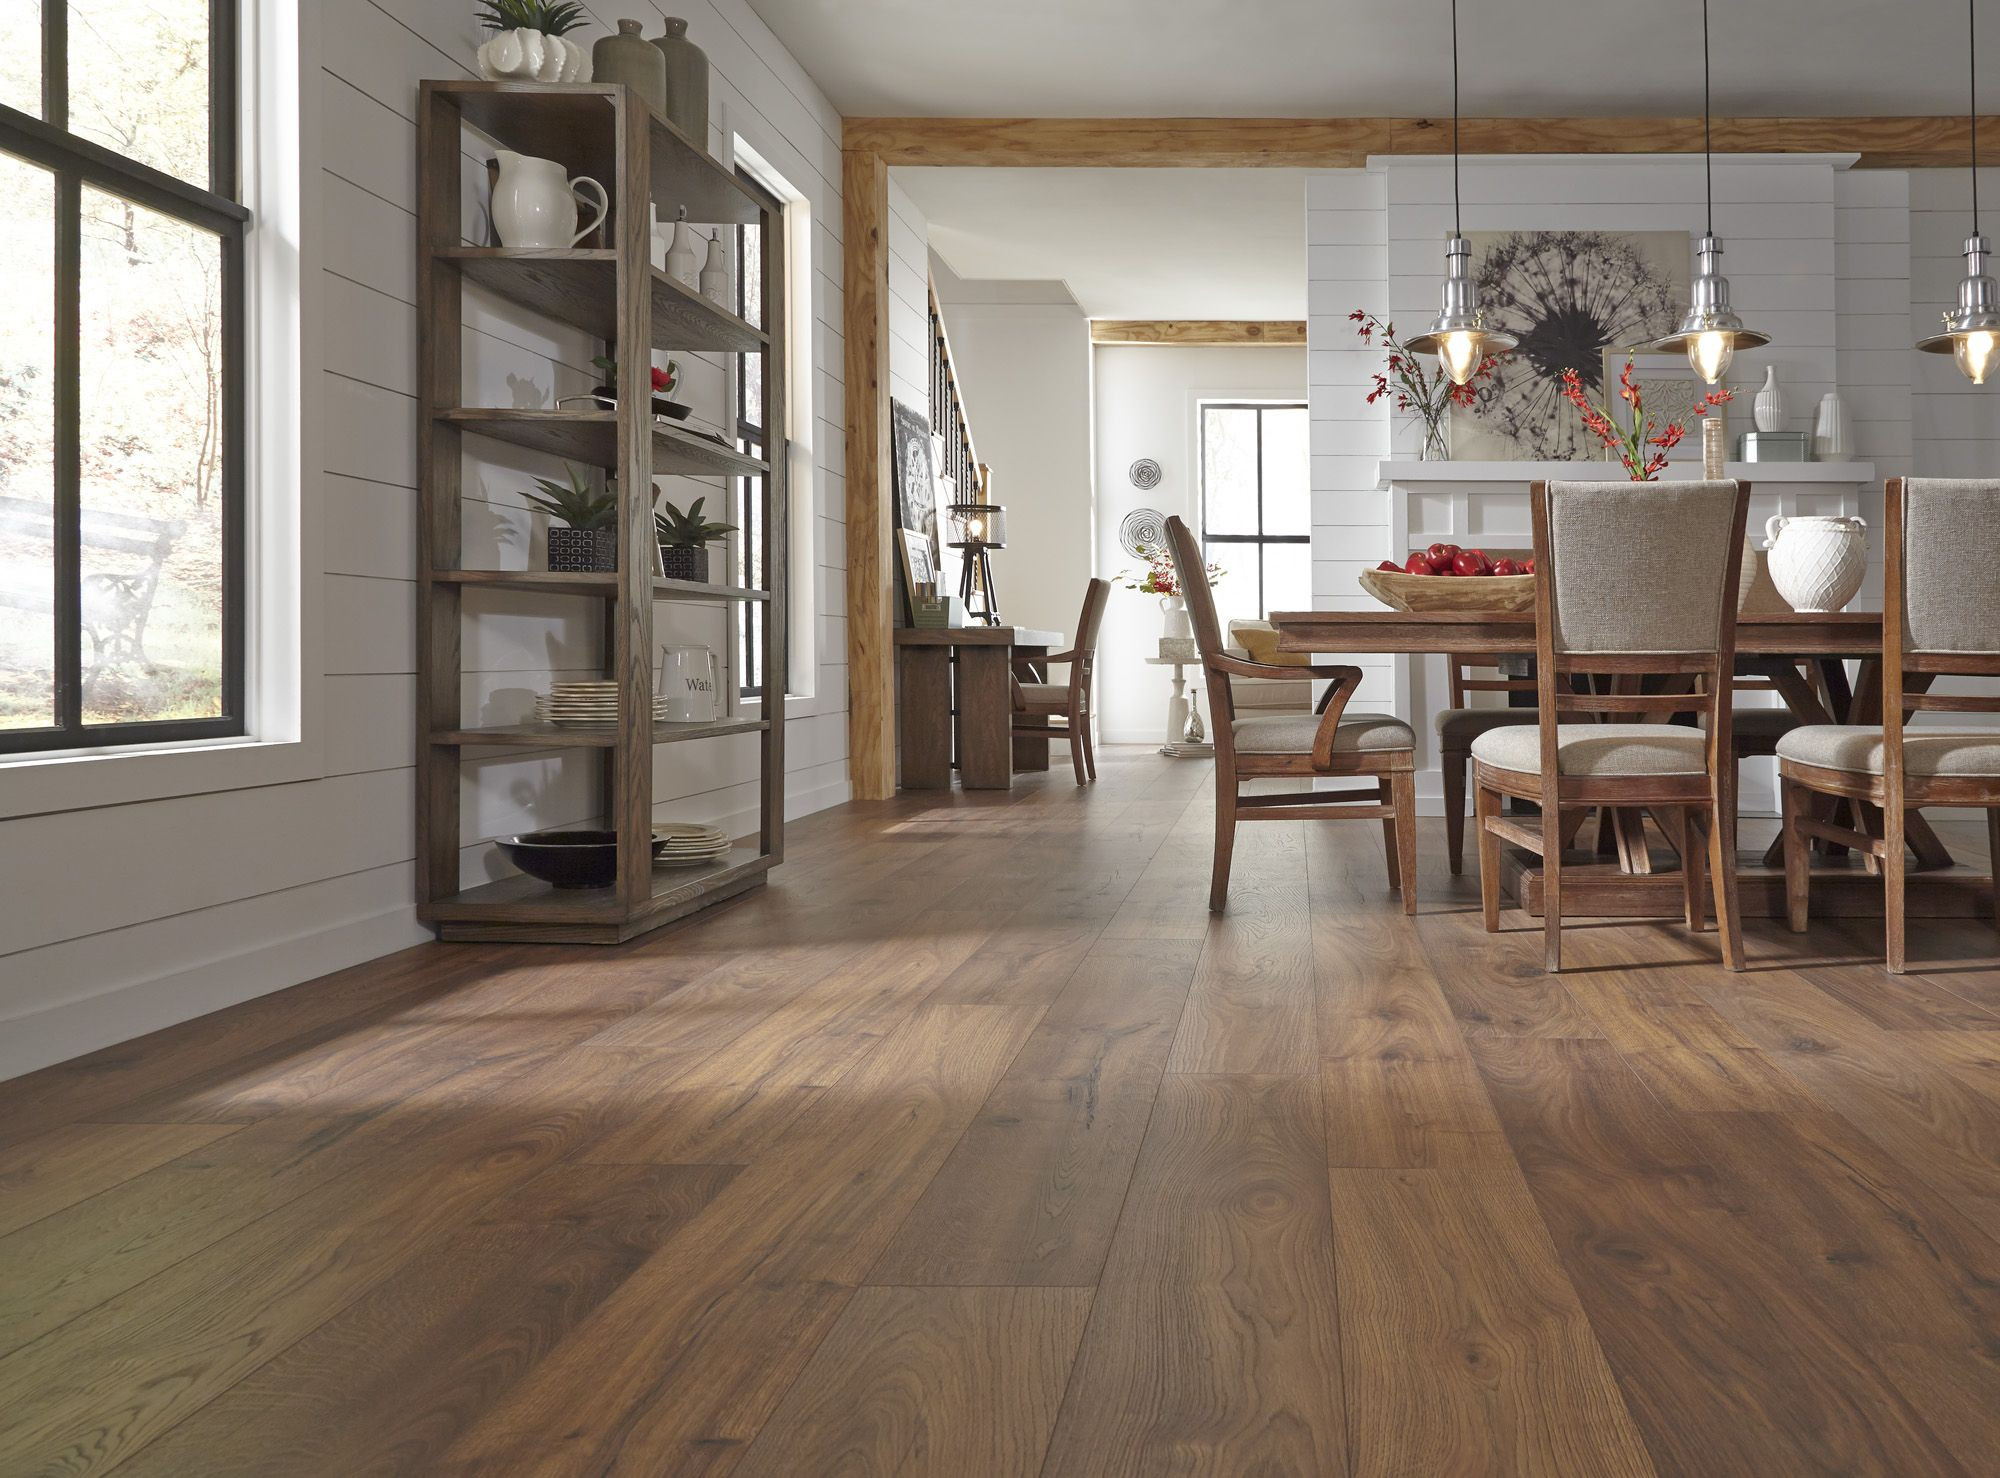 armstrong hardwood laminate floor cleaner of skyline oak dream home x2o water resistant laminate floors with regard to skyline oak dream home x2o water resistant laminate